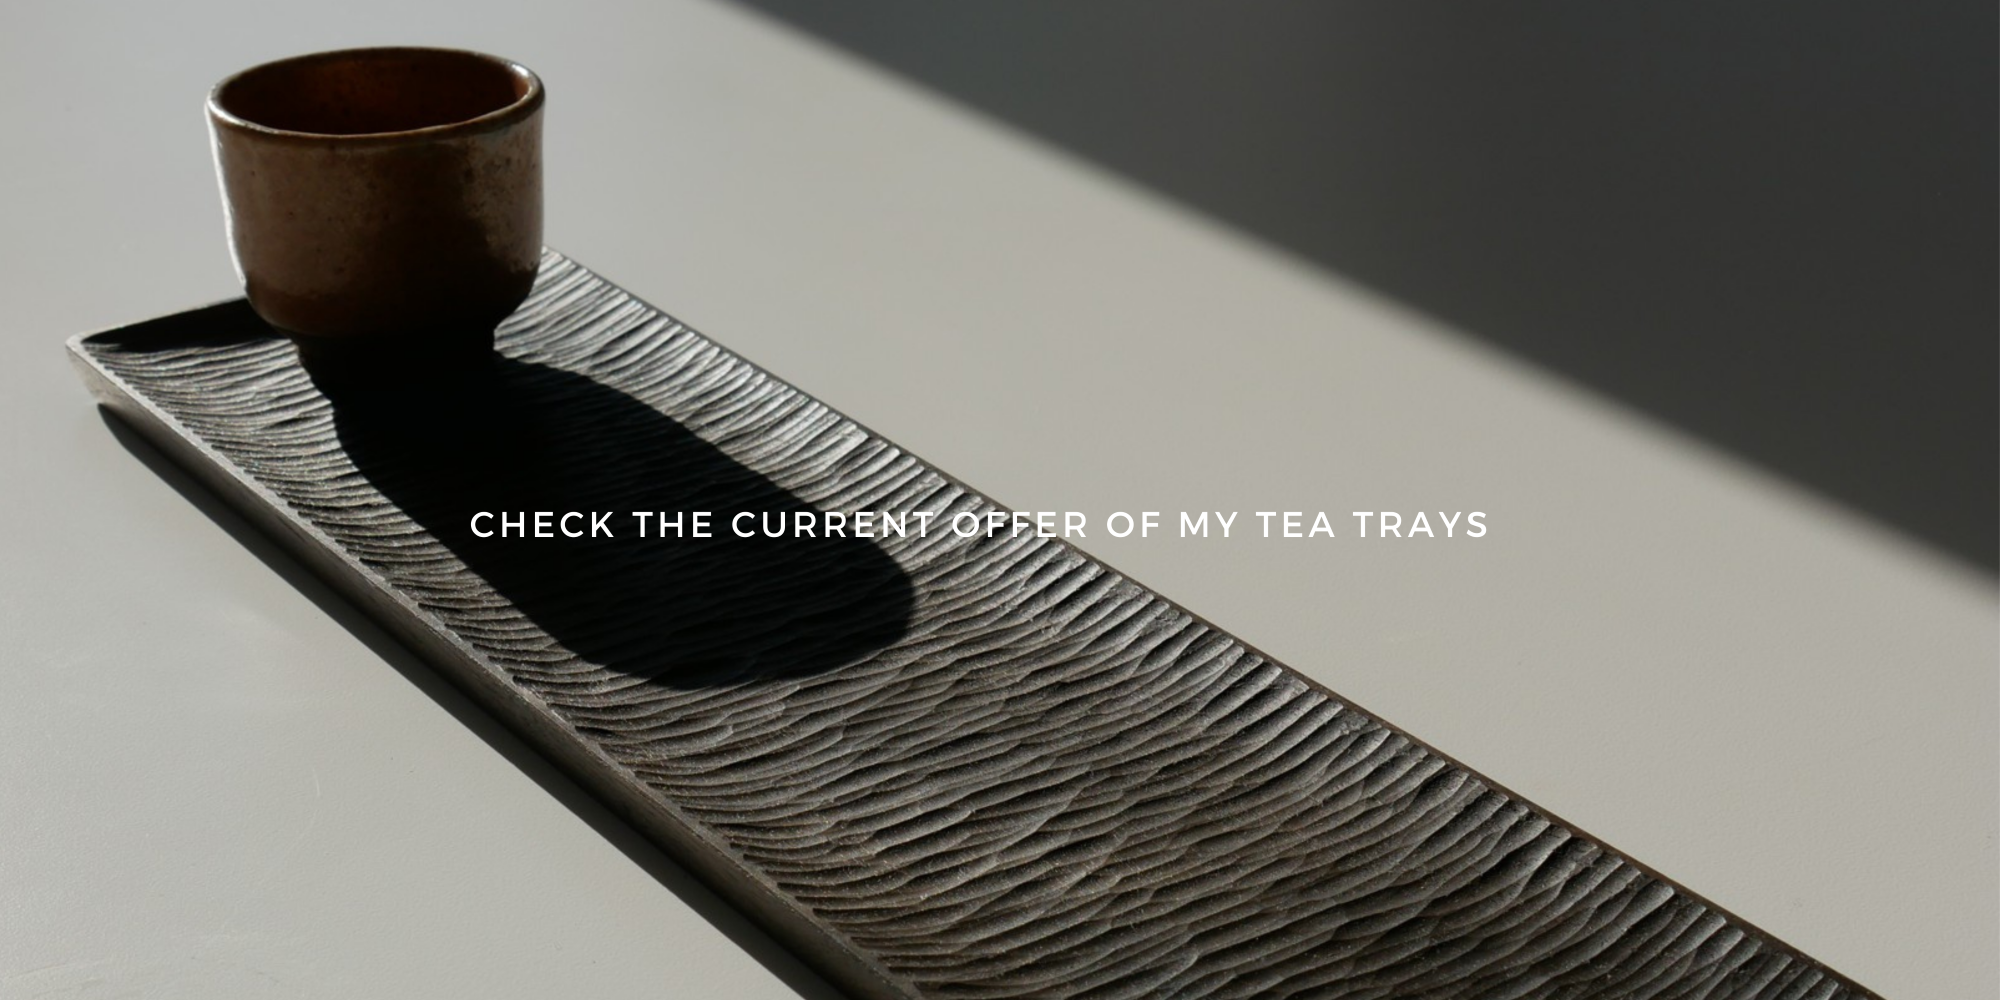 current offer of tea trays by TeaTom